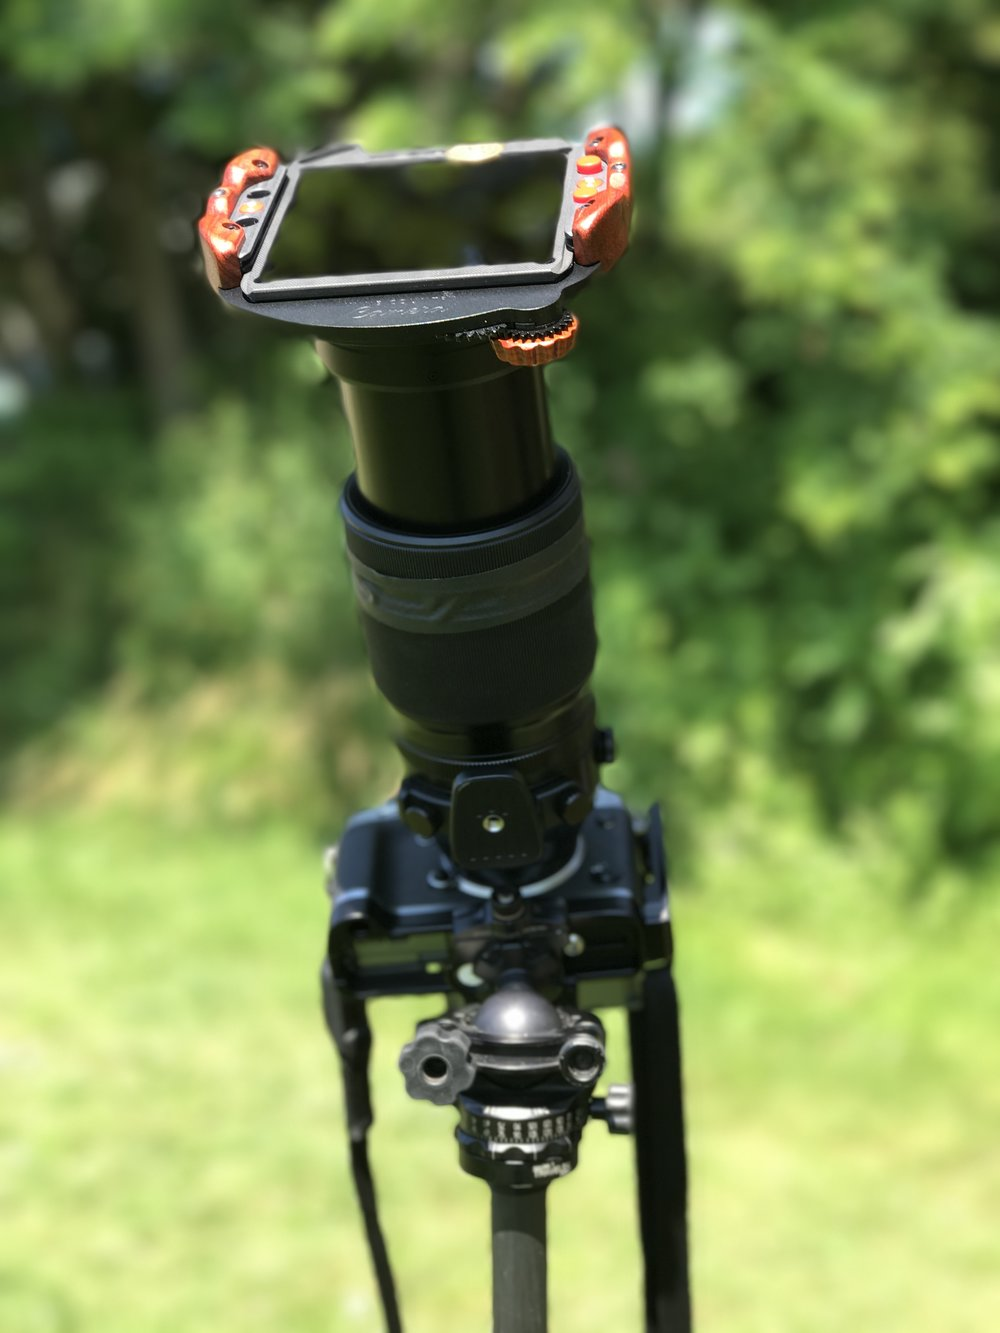 Wine Country Filter Holder system and 100-400mm lens.